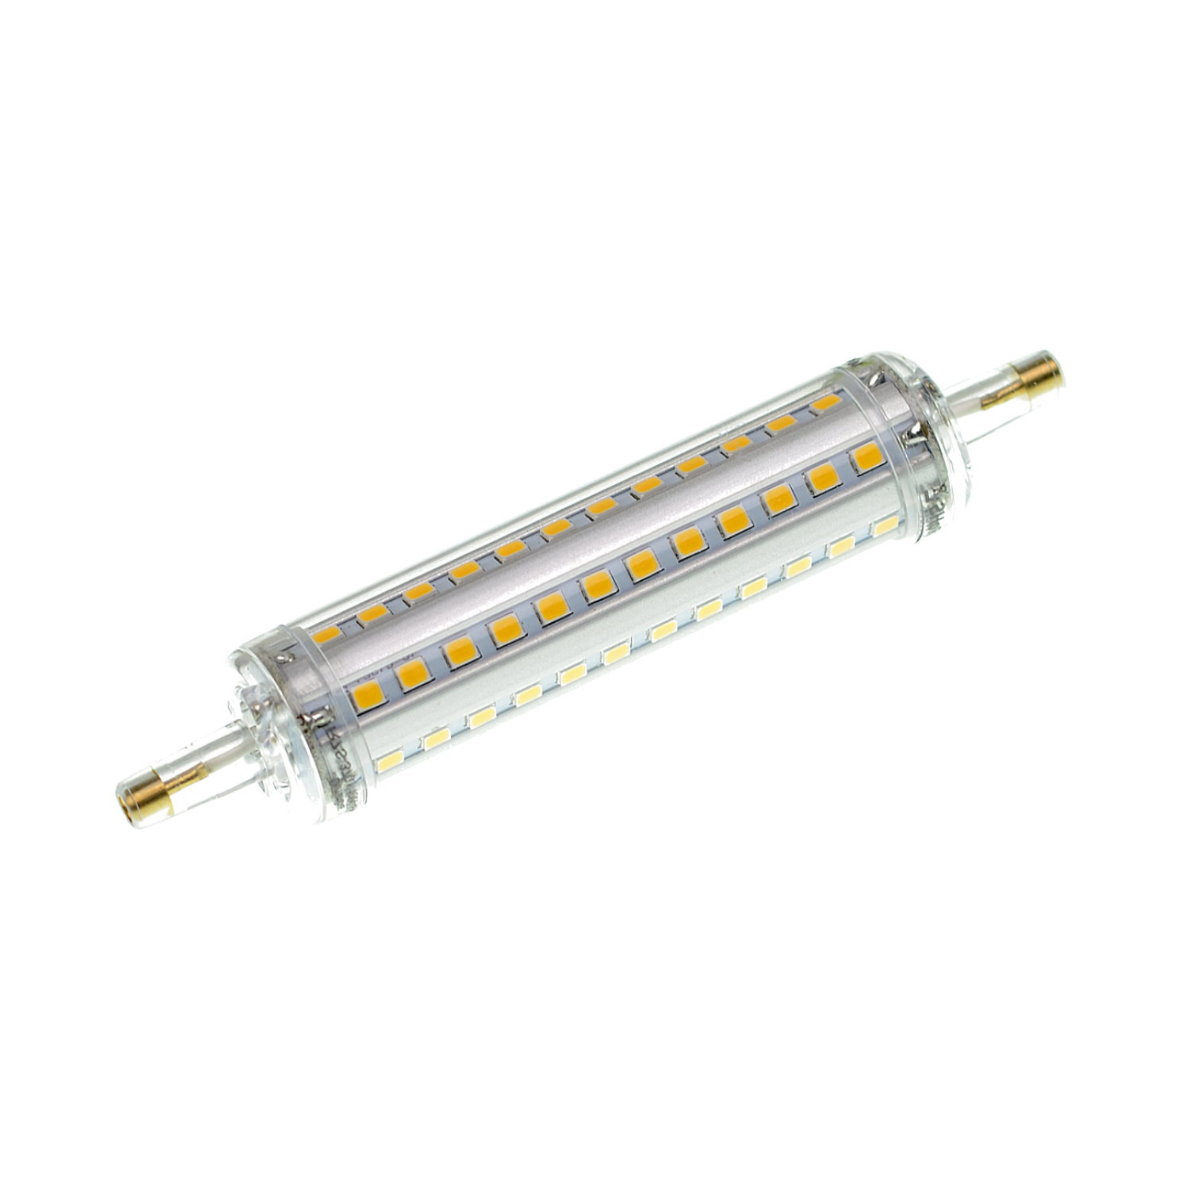 Led leuchtmittel stab 5w 10w r7s fluter halogenstab 78mm for Led r7s 78mm osram